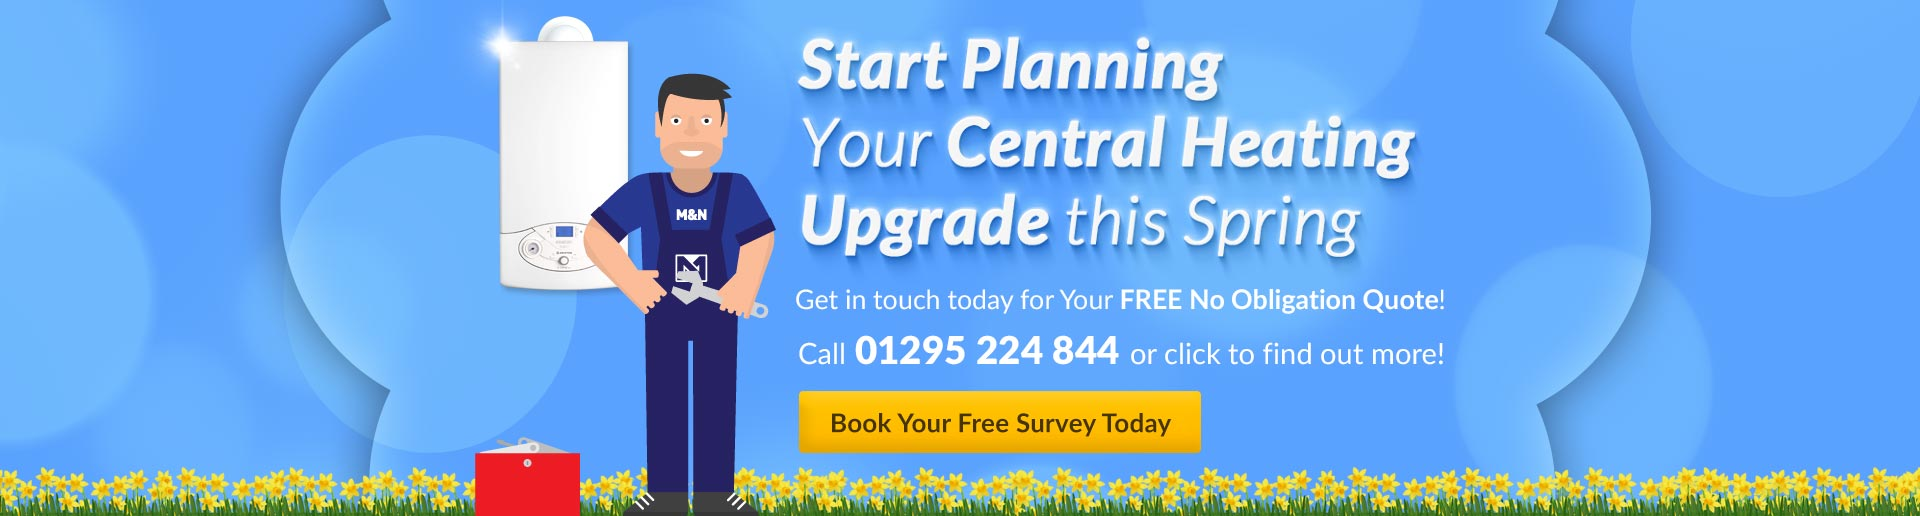 Plan Central Heating This Spring